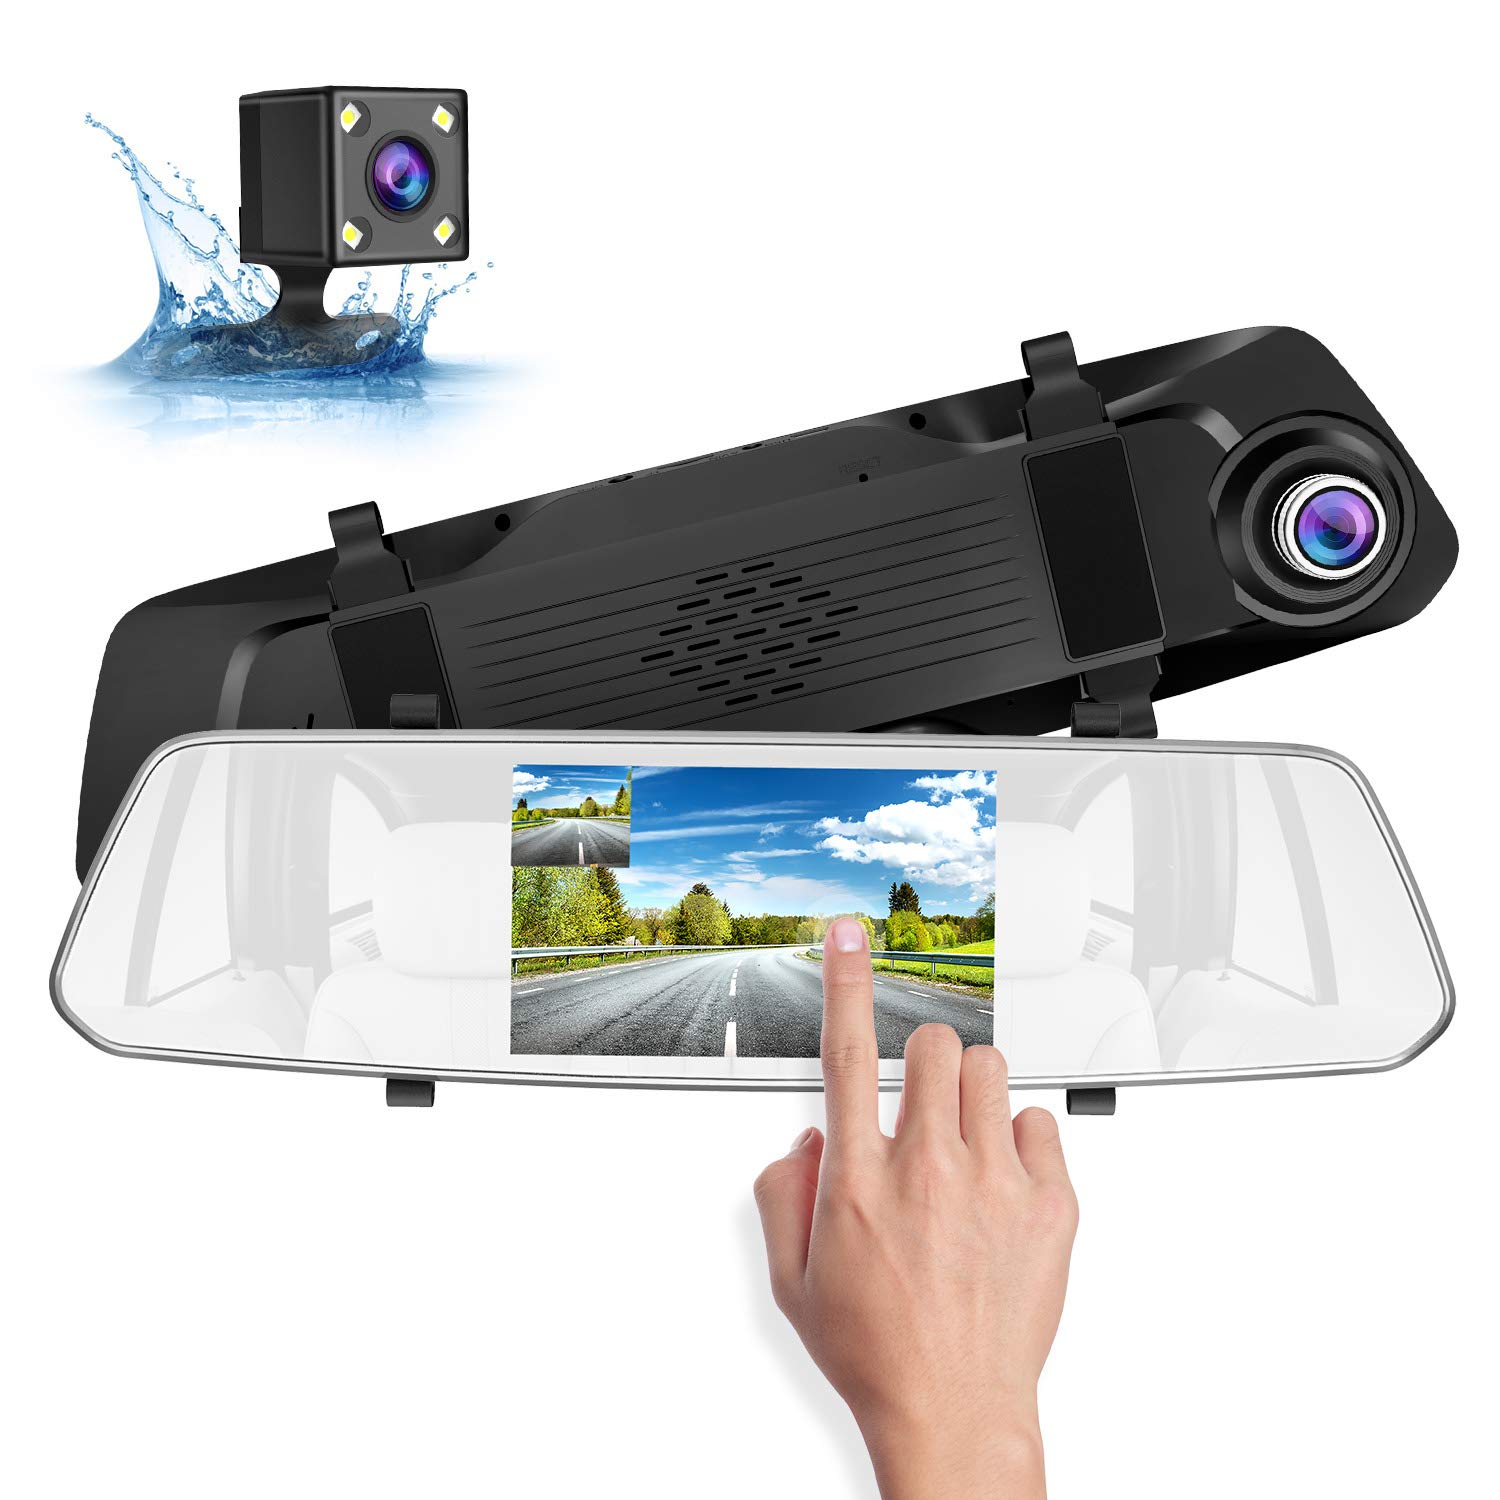 SUAOKI 1080p Full-HD Car DVR With HD Rear-View Camera for Parking Assistance Comes With Crisp 5-Inch Touch Screen Display Supports G-Sensor, Loop Recording, 128GB Storage Room(SD Card Not Included)